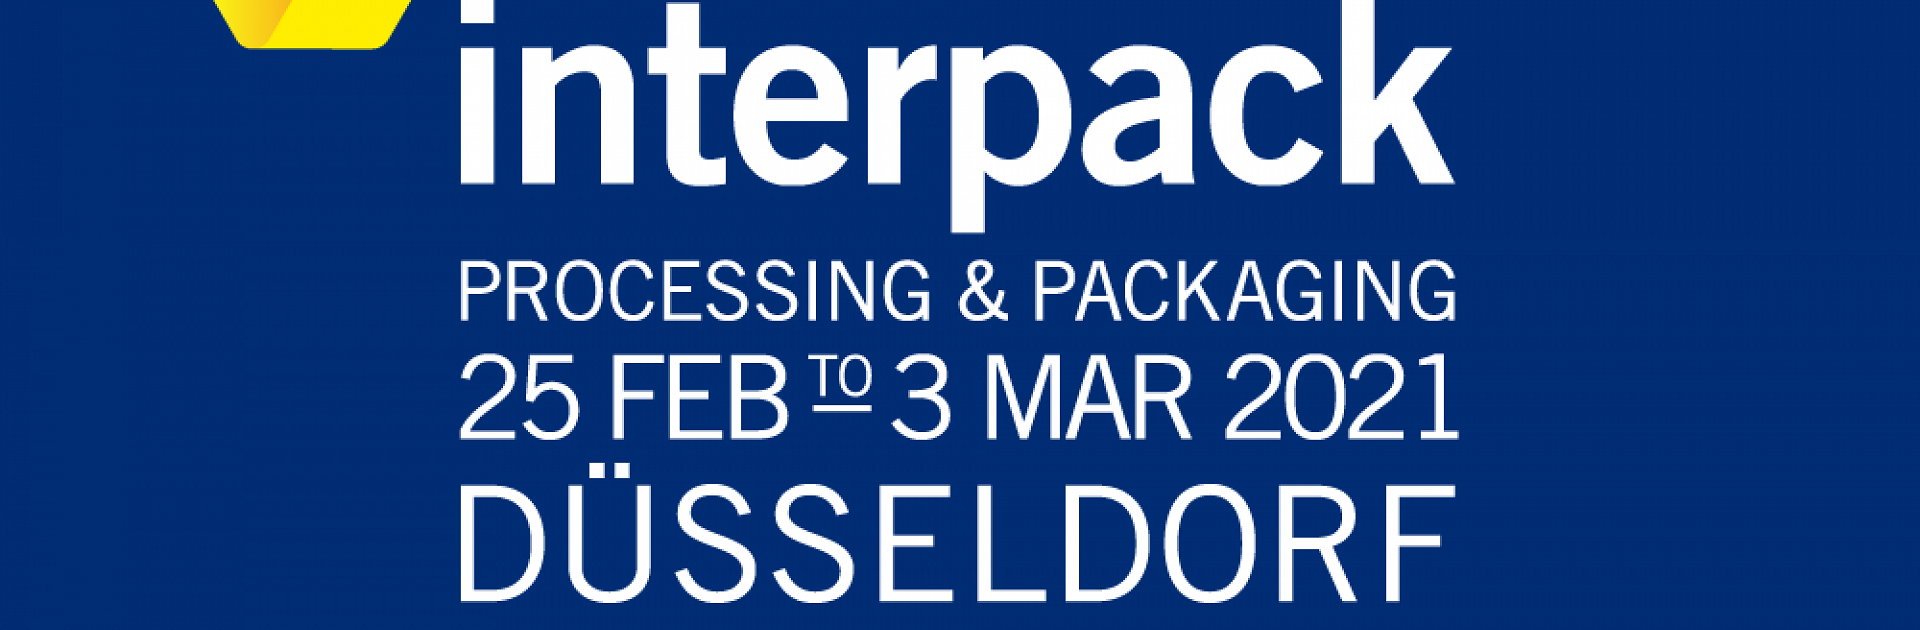 interpack2021.png